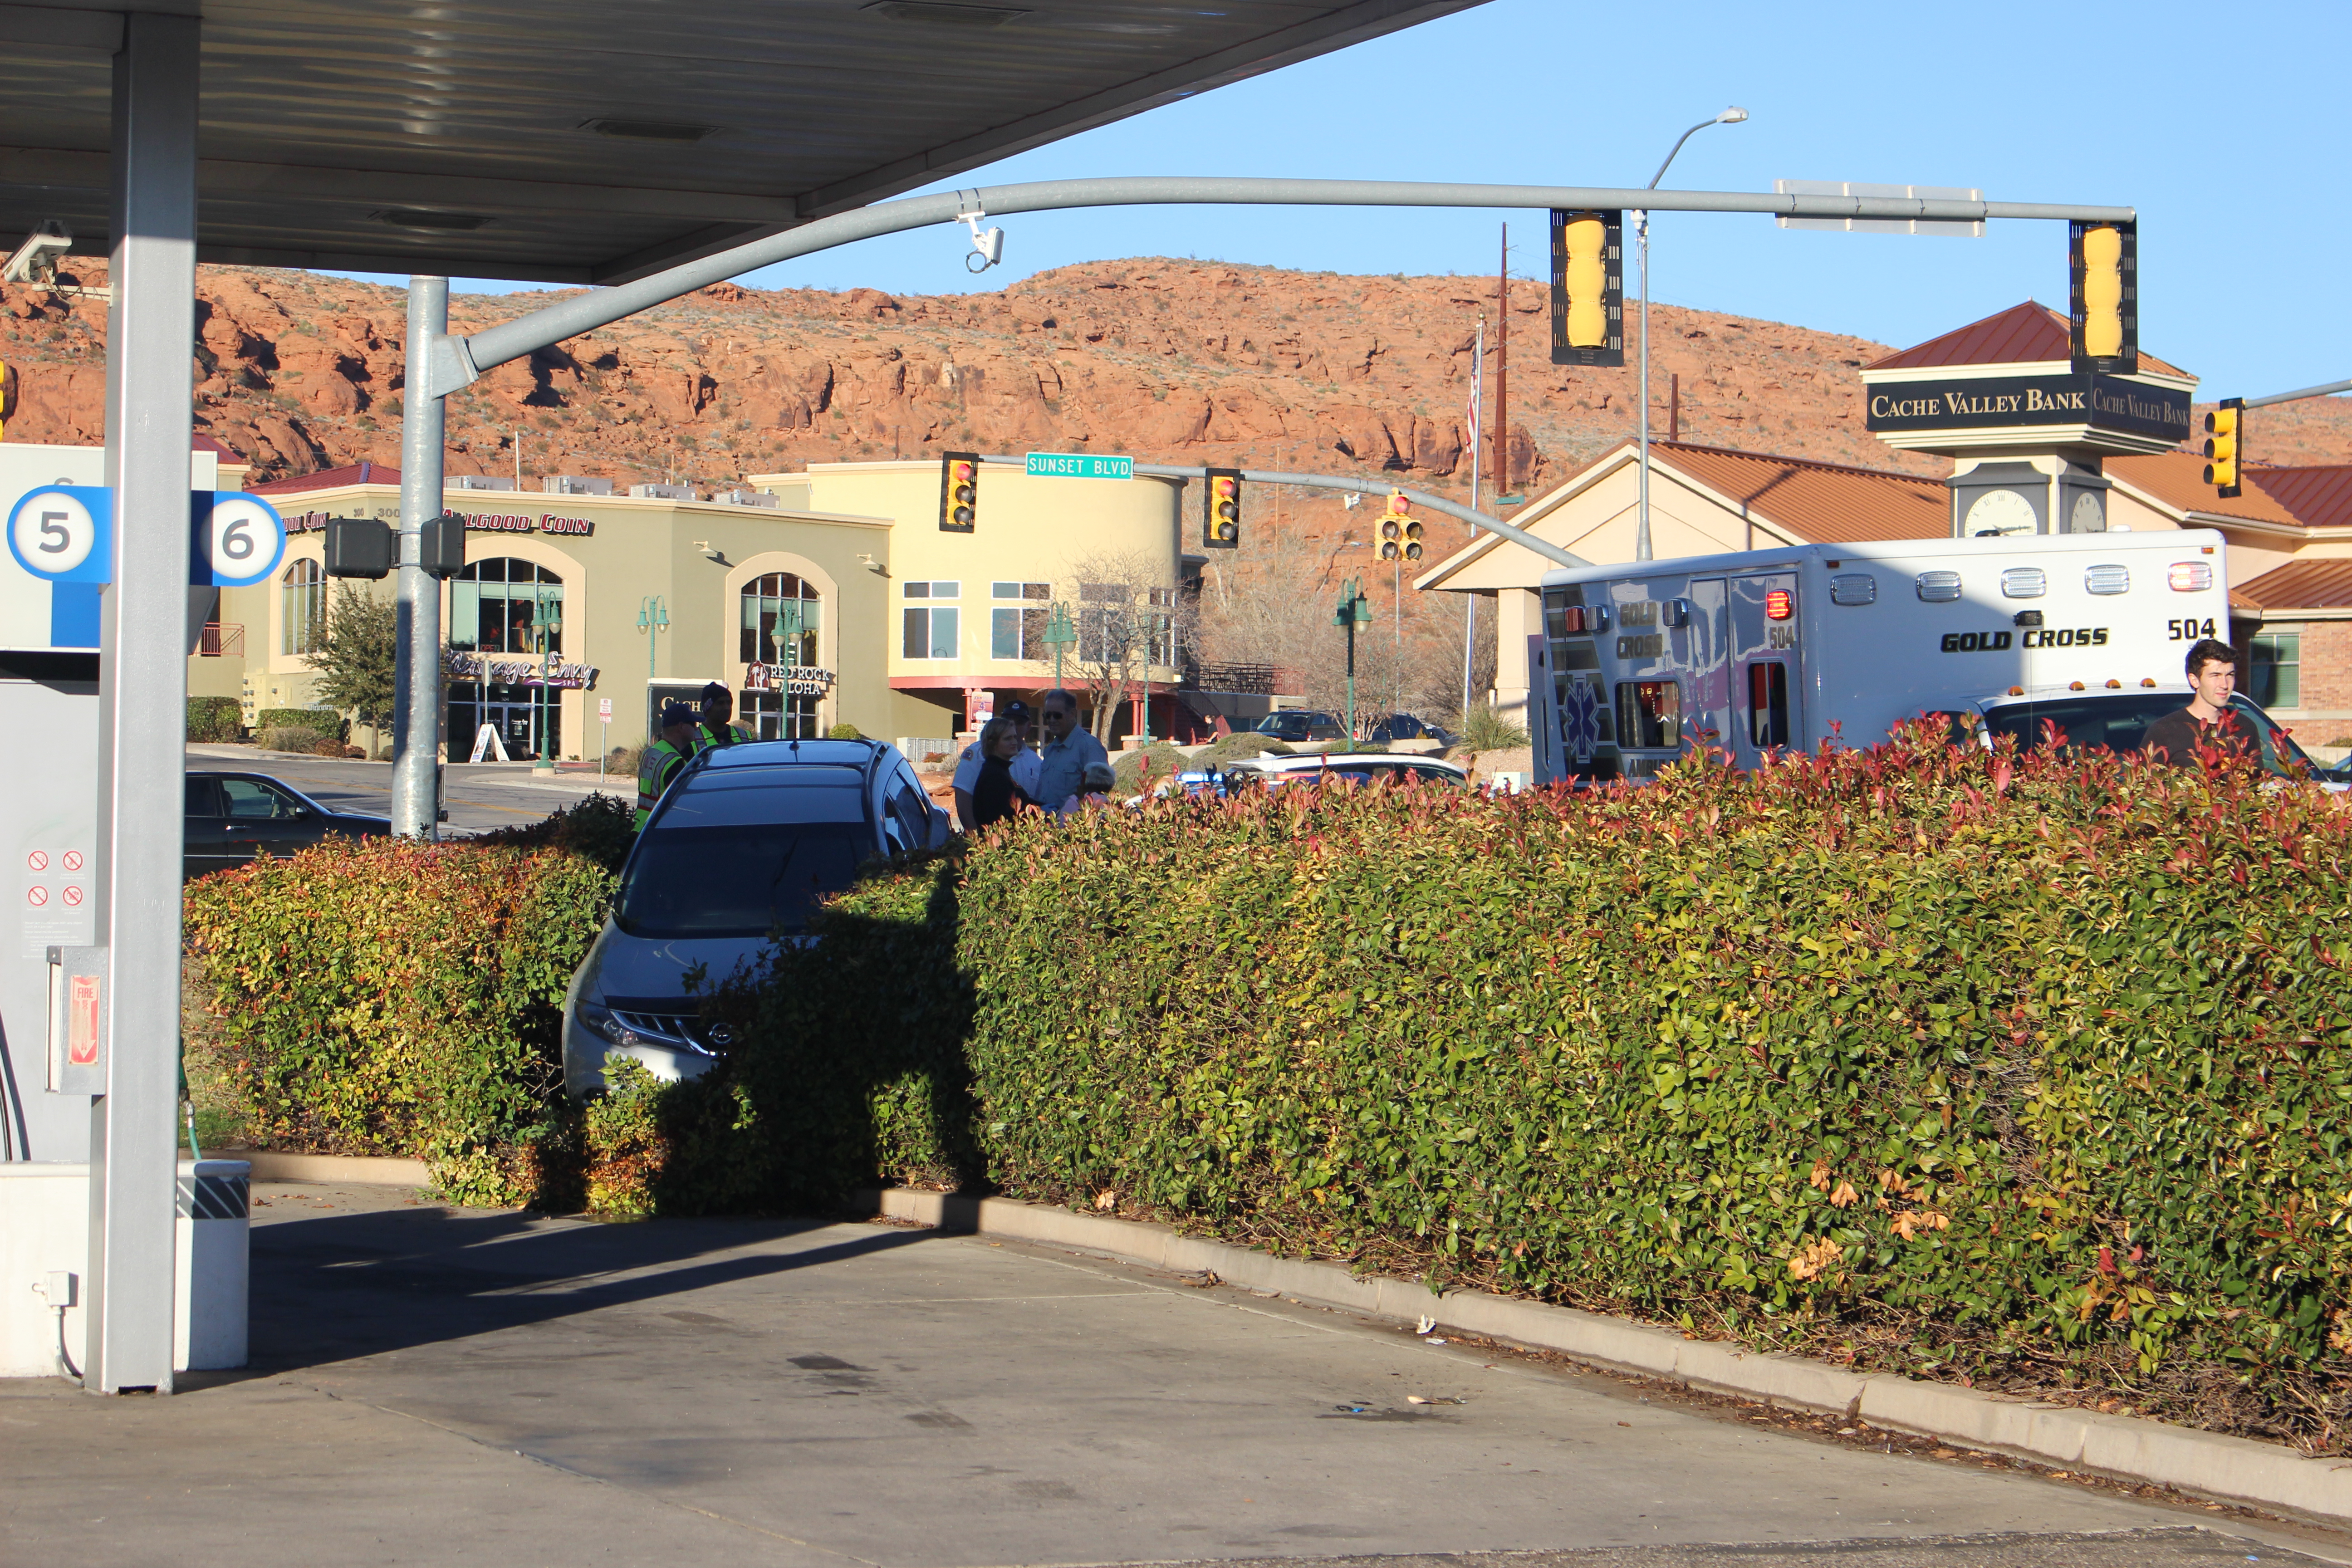 A car rests in the bushes of a gas station after its driver reportedly suffered a medical condition and drove it off the road, St. George, Utah, Dec. 29, 2016 | Photo by Joseph Witham, St. George News